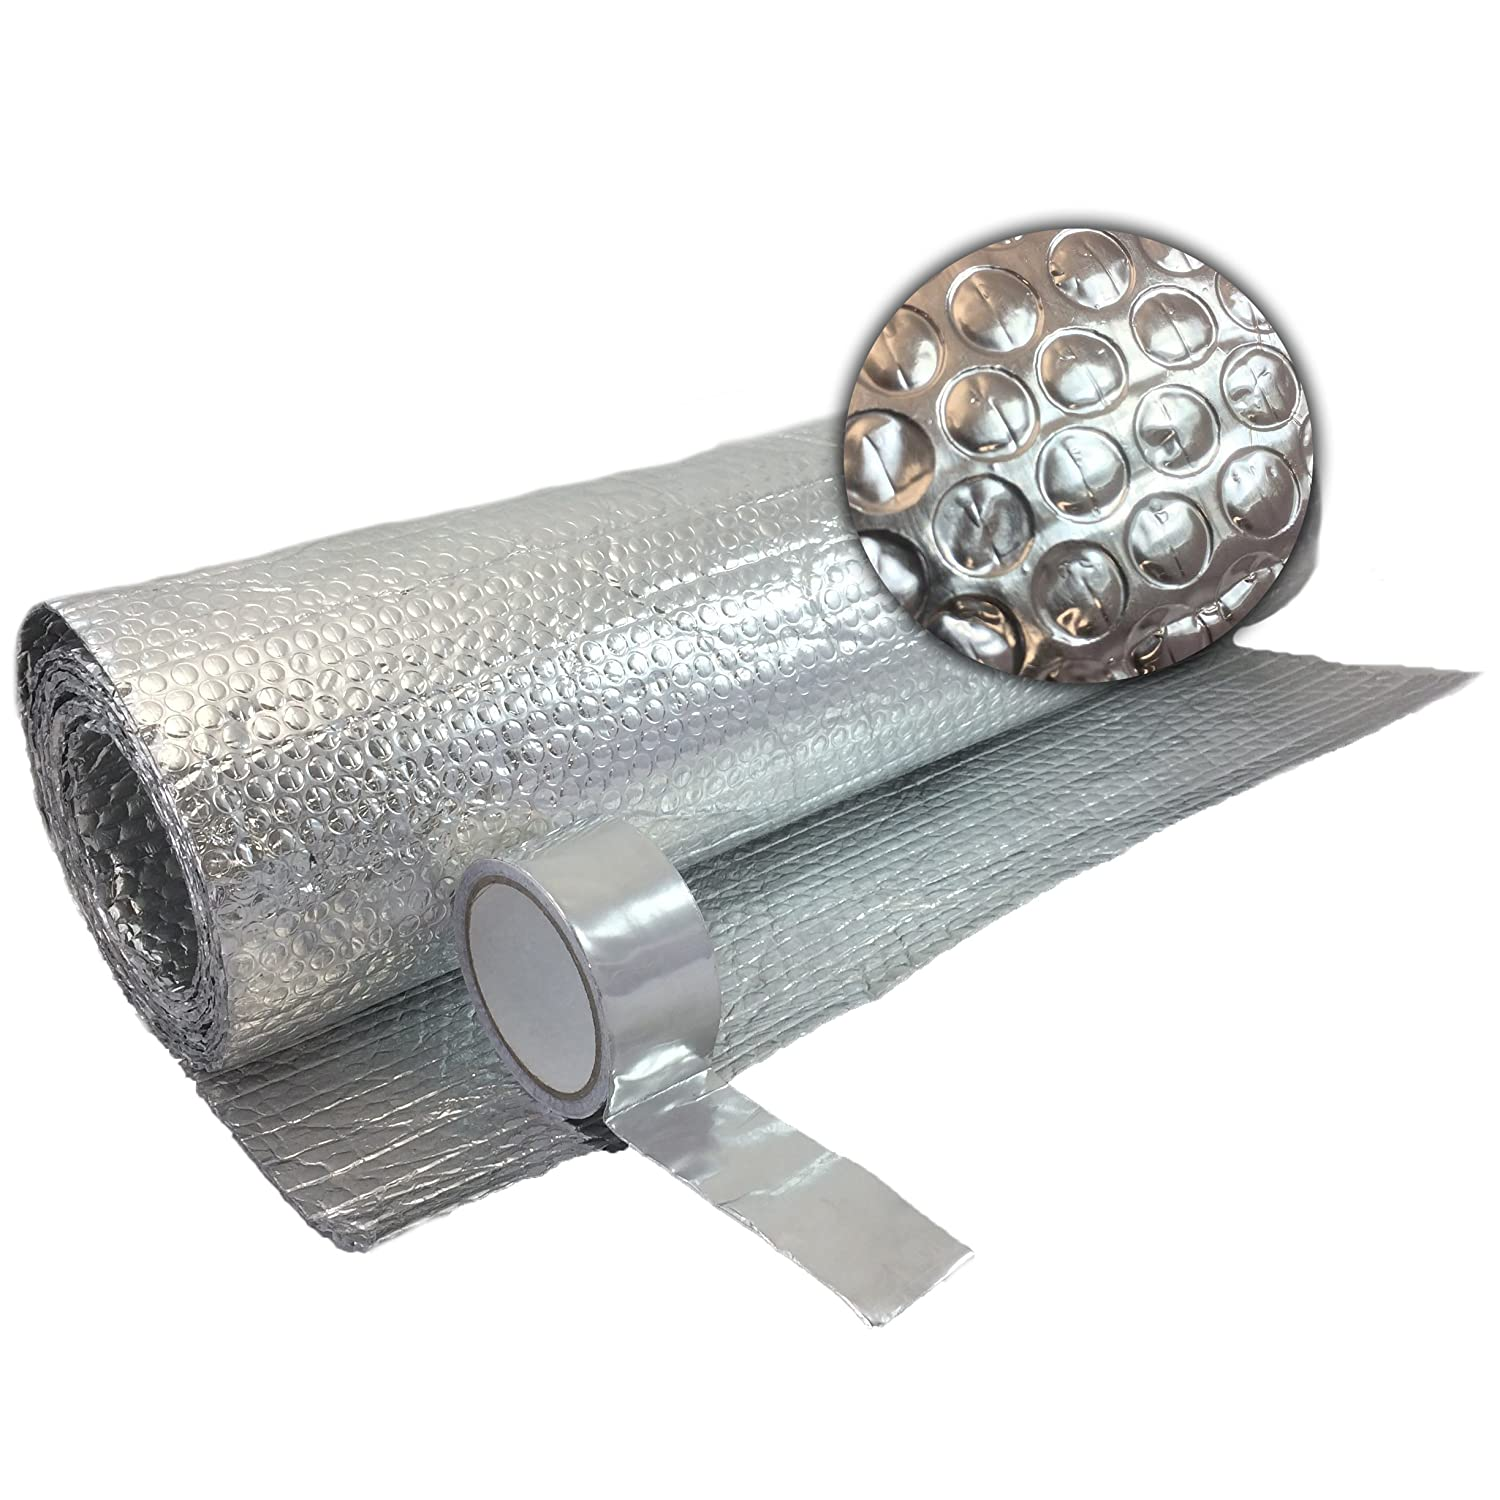 Free Tape 1.2m X 10m Double FOIL Insulation Aluminium Bubble LOFT Caravan Wall Bestport (Europe) Ltd